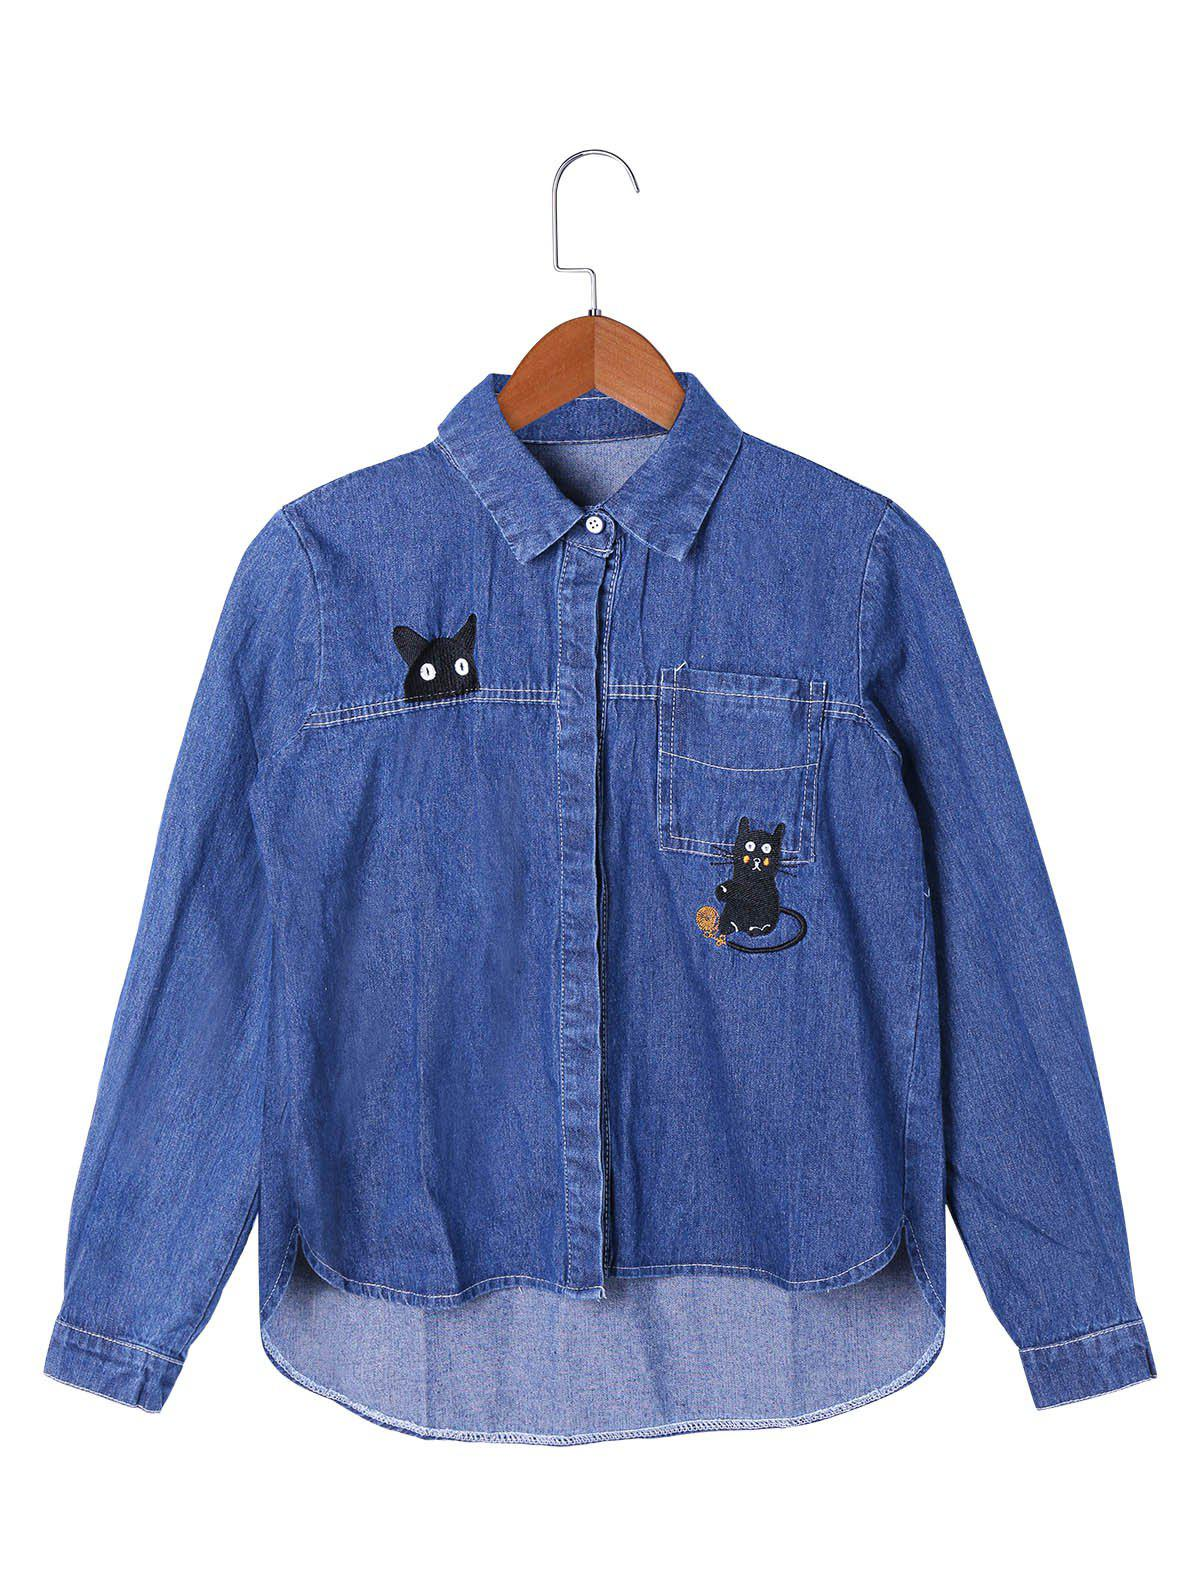 Patch Pocket High Low Hem Shirt Jacket - BLUE L